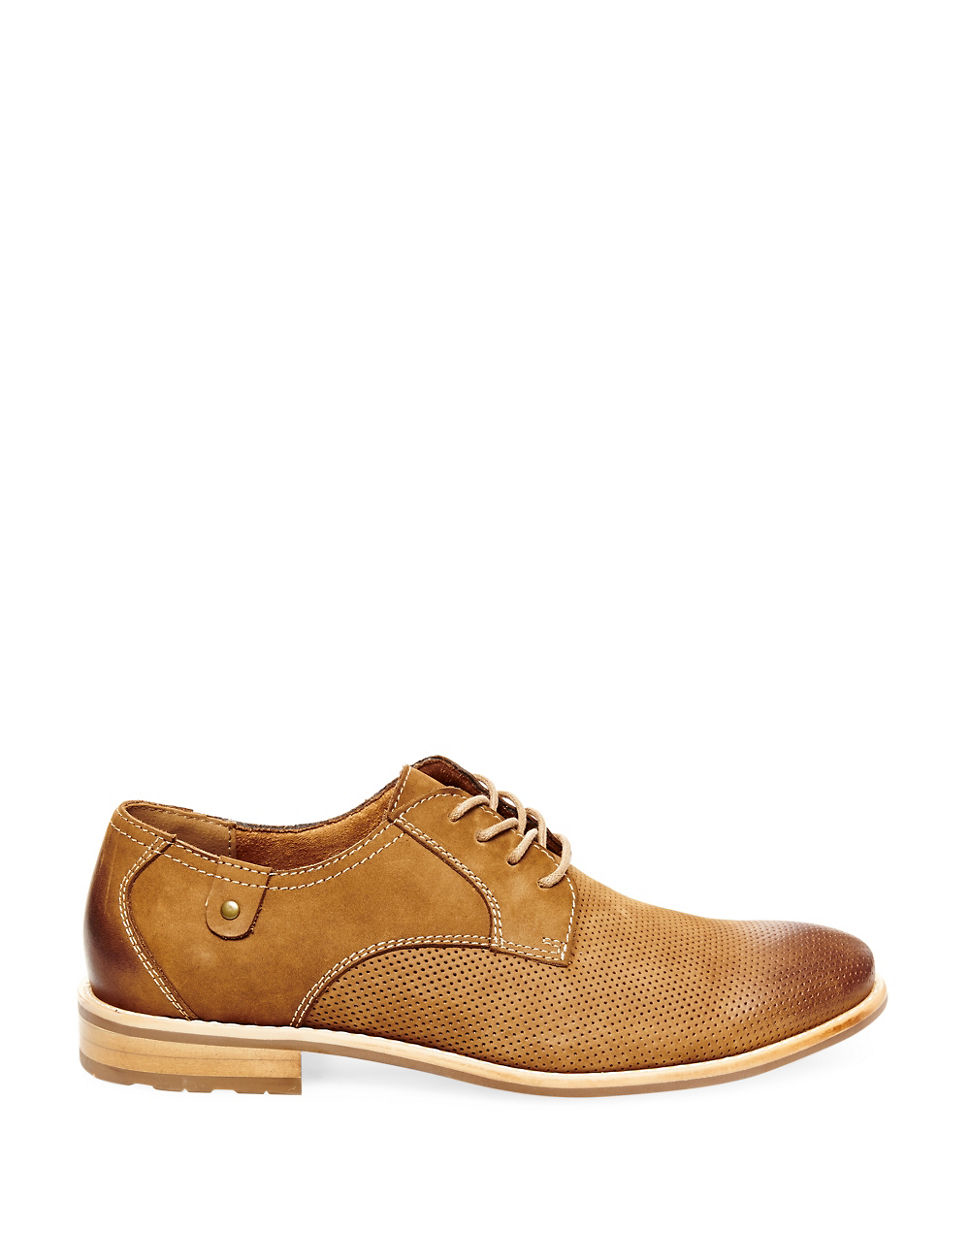 Steve Madden Capturr Perforated Leather Derby Shoes